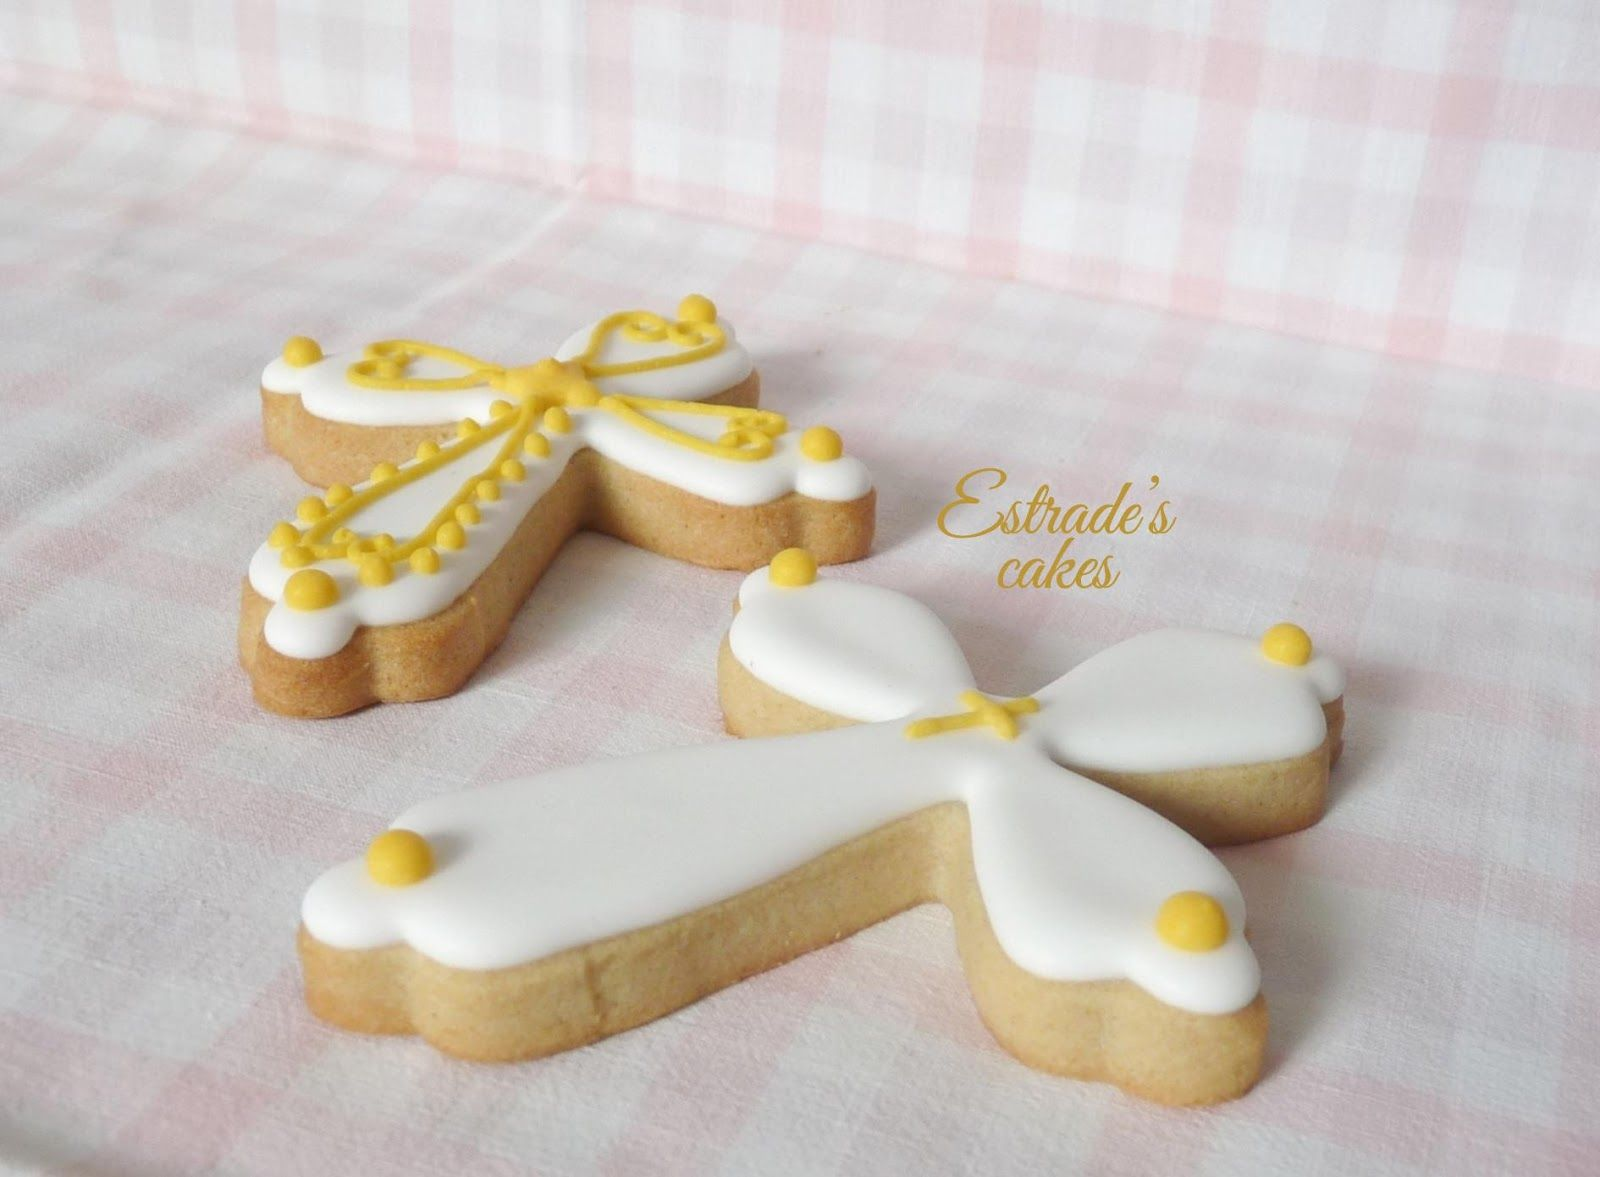 Galletas Decoradas De Comunion Estrade 39s Cakes Galletas De Cruz Decoradas Con Glasa